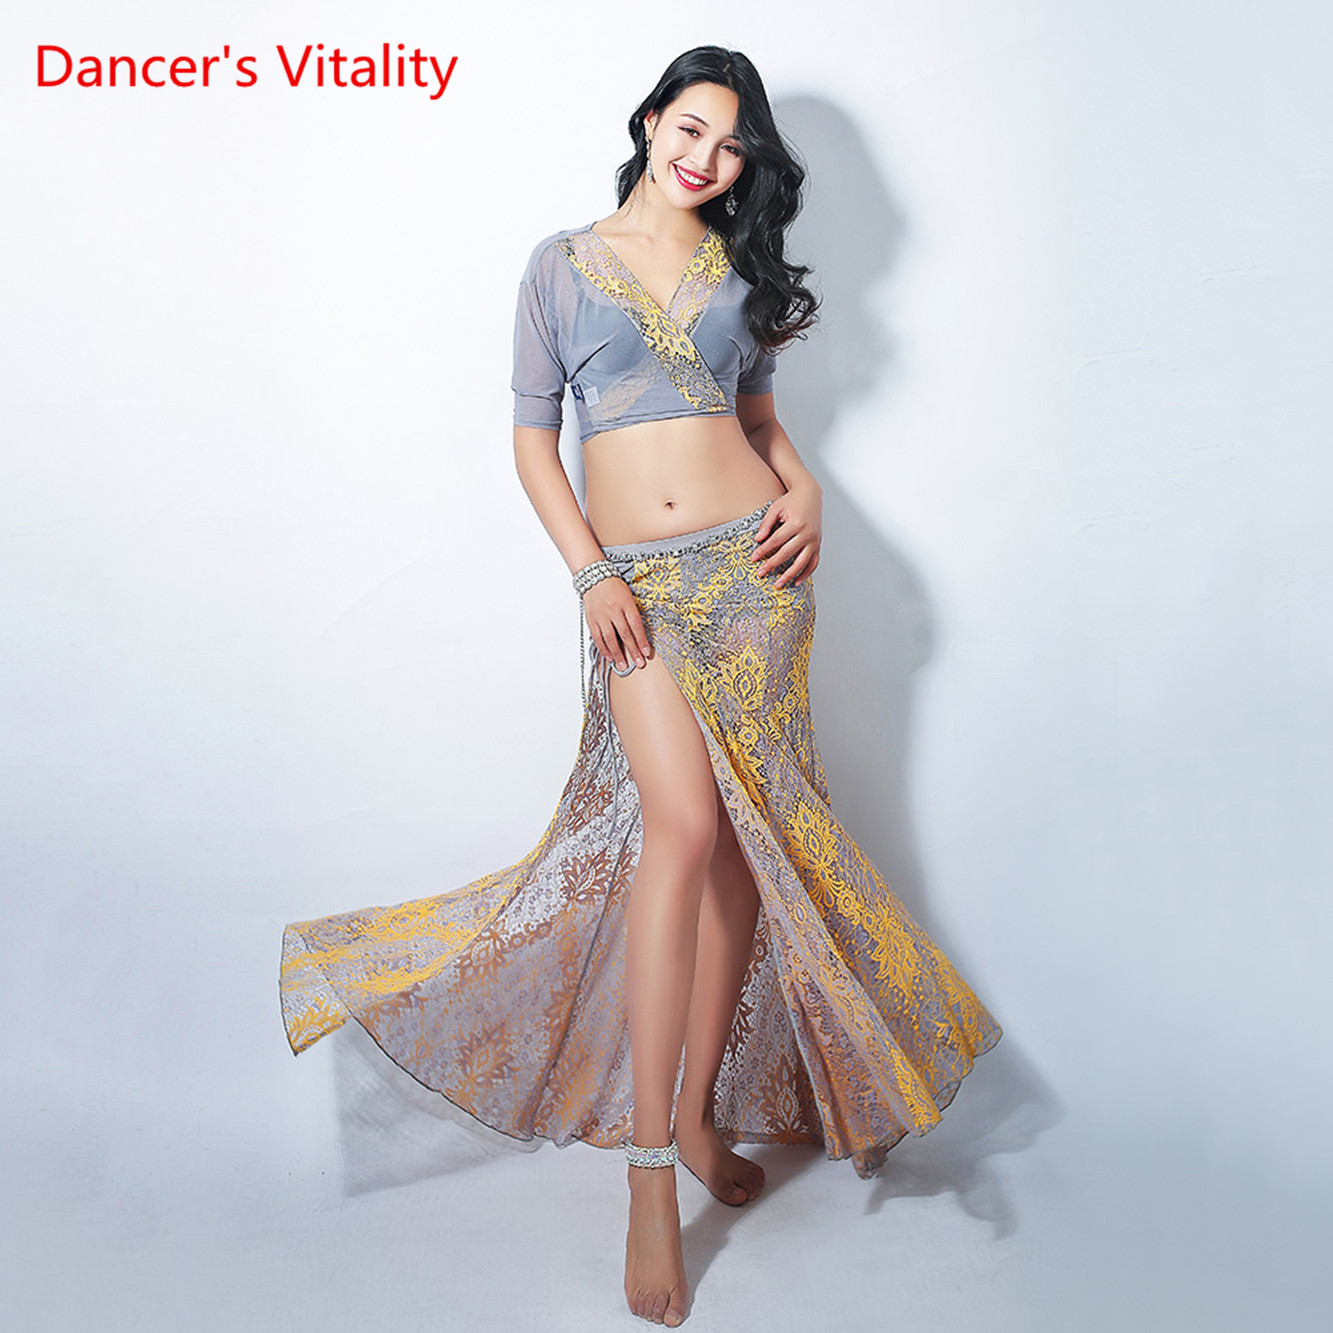 New Women Belly Dance Practice Clothes Costumes Lace Mopping Skirt+Sexy V Collar Top 2pcs Free Delivery